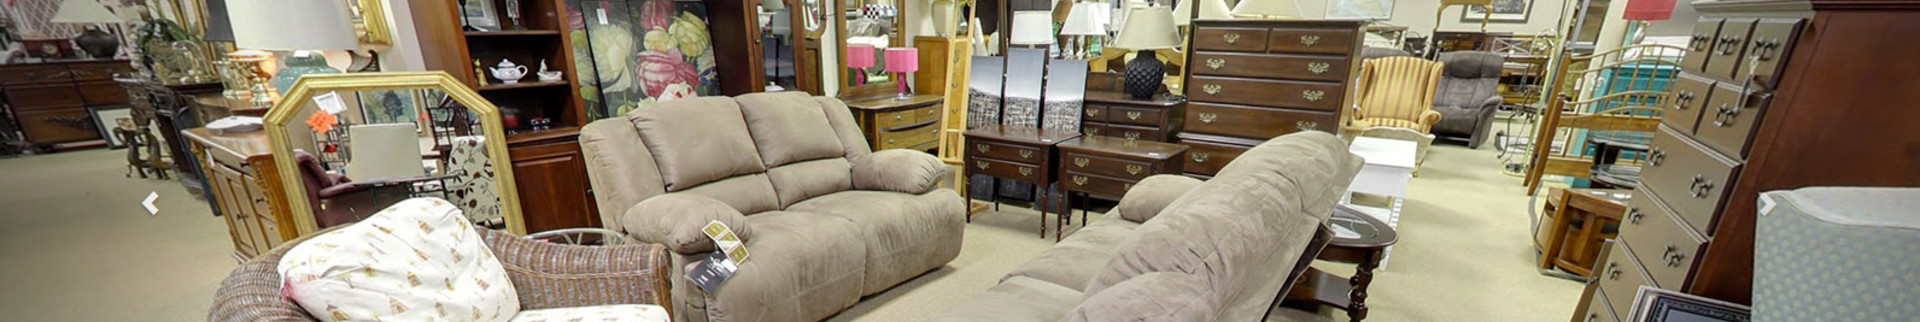 Savannah Furniture Consignment's banner image.